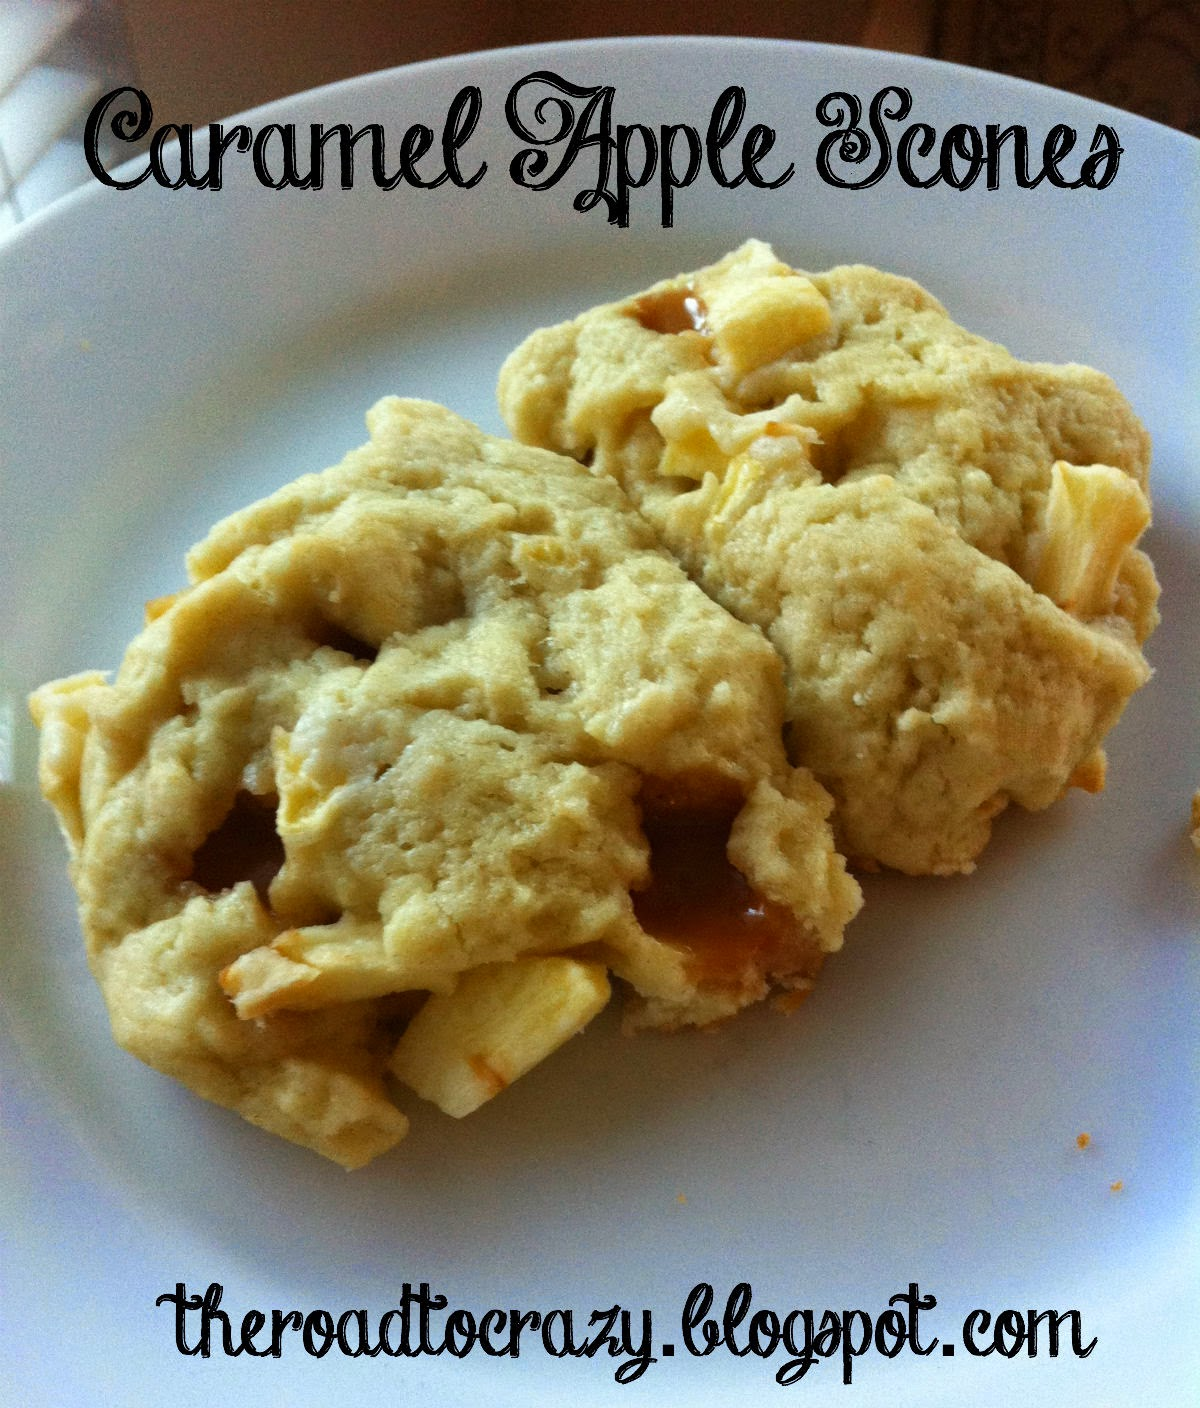 ... Road to Crazy: 31 Days of Halloween 2014 - Day 3: Caramel Apple Scones